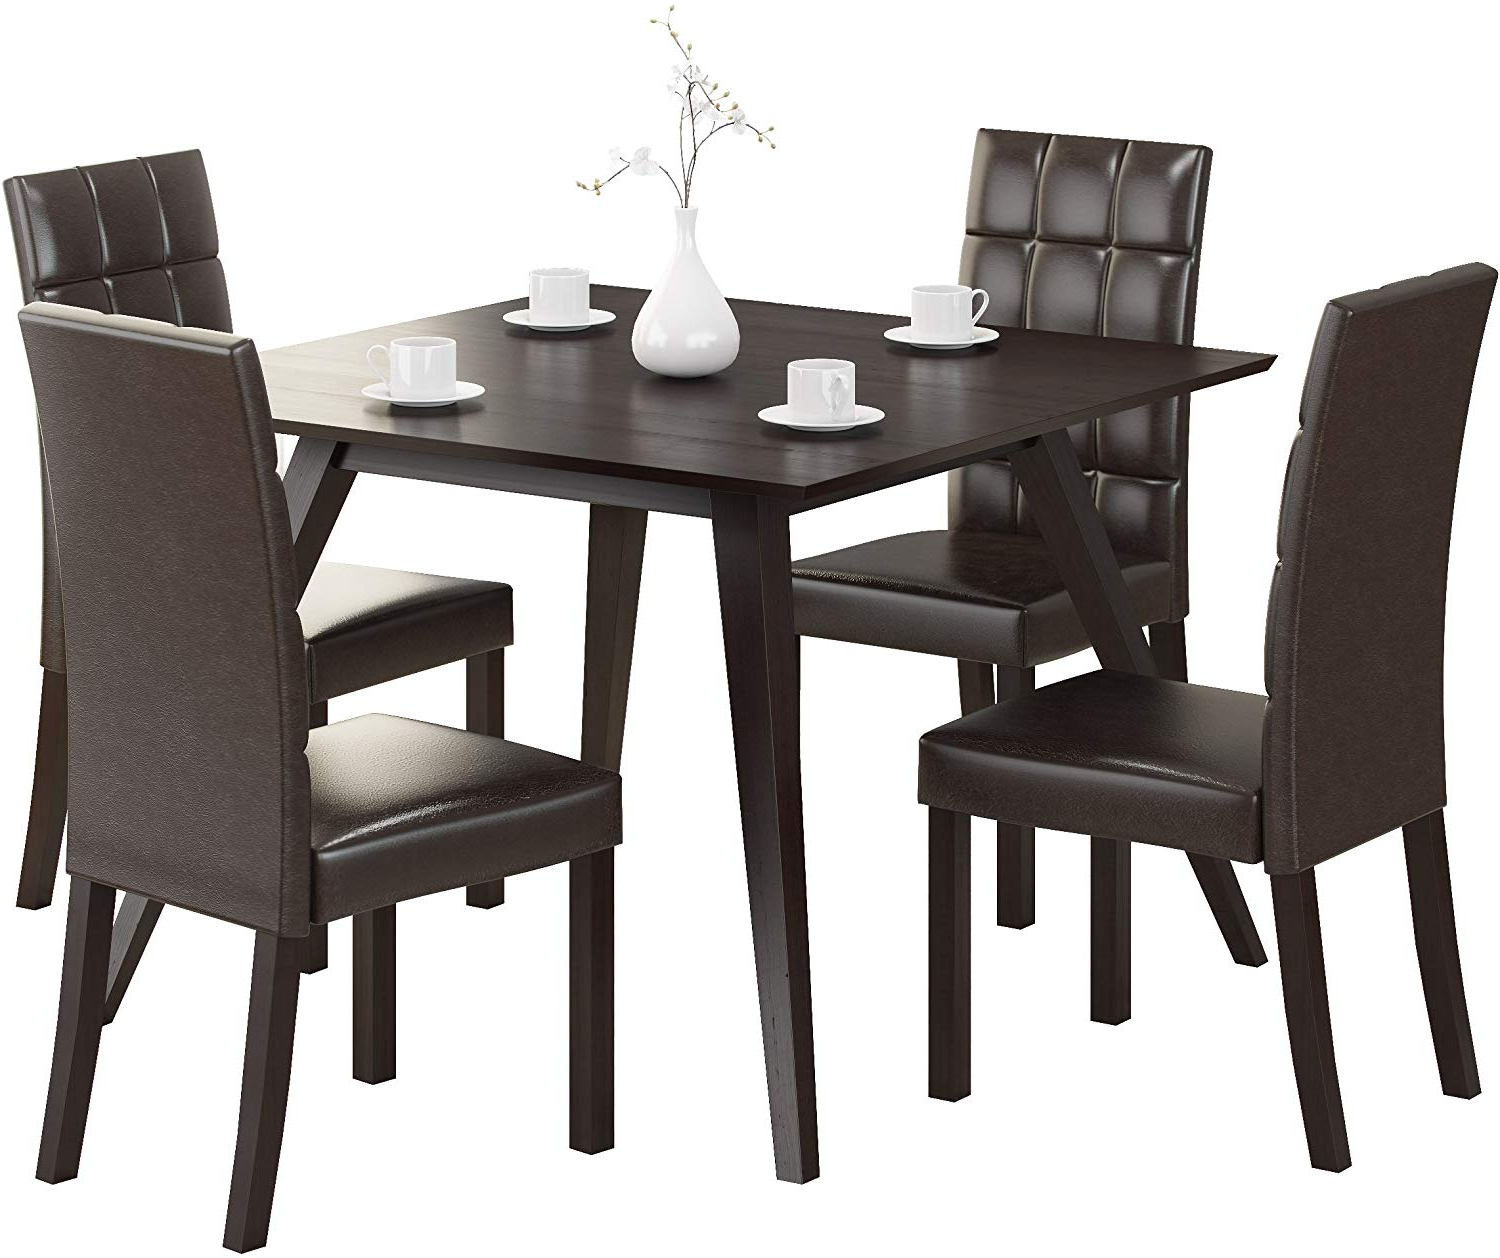 Corliving Atwood Dining Set, Dark Brown In Well Liked Atwood Transitional Square Dining Tables (View 3 of 30)